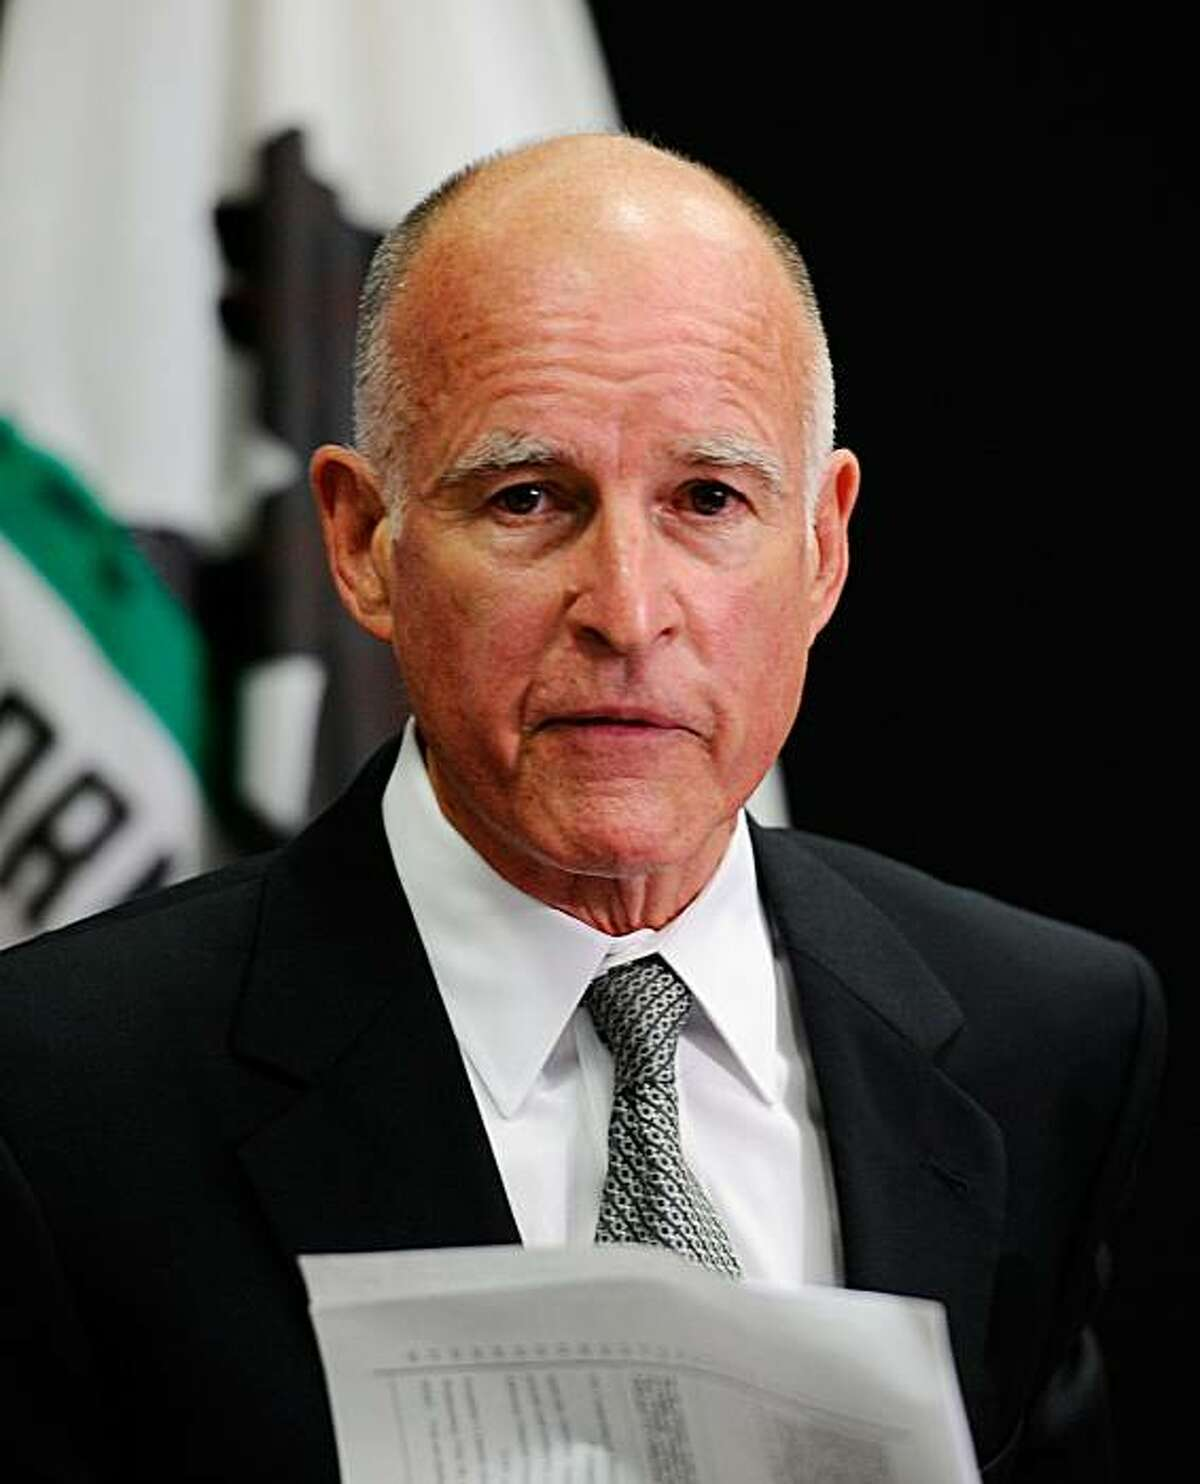 LOS ANGELES, CA - JULY 26: California Attorney General Jerry Brown holding a copy of a subpoena speaks during a news conference on July 26, 2010 in Los Angeles, California. Brown, who is also the democratic gubernatorial candidate, said his office has issued subpoenas for hundreds of employment, salary and other records from the city of Bell, as part of an investigation into the hefty salaries being paid to top administrators and elected officials.